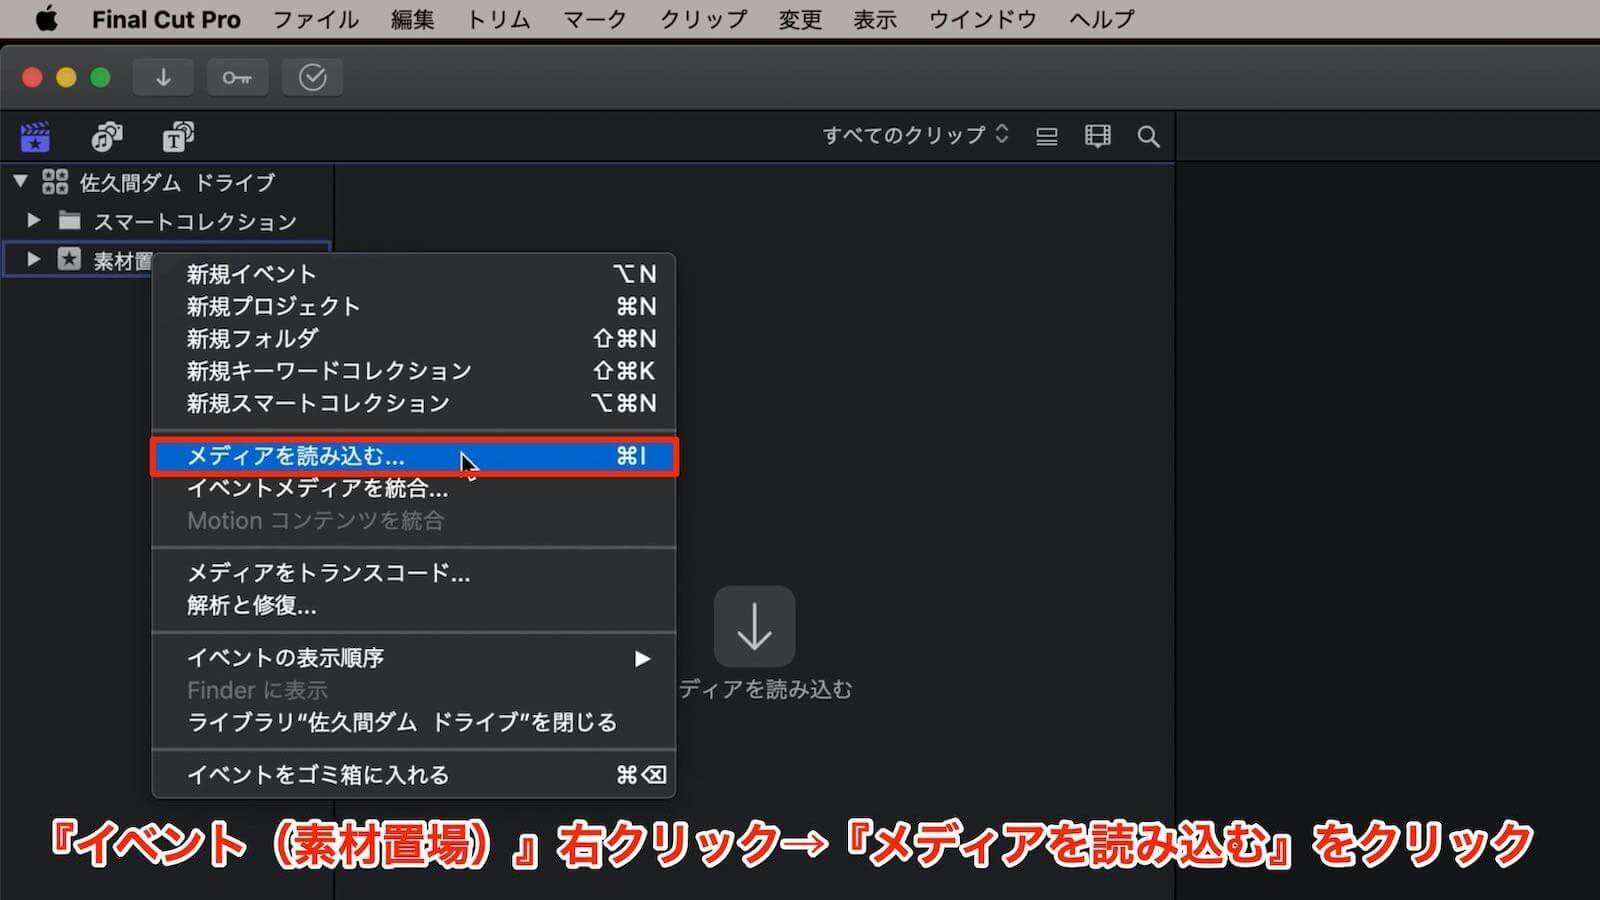 0232 Explain the basic usage of Final Cut Pro 19